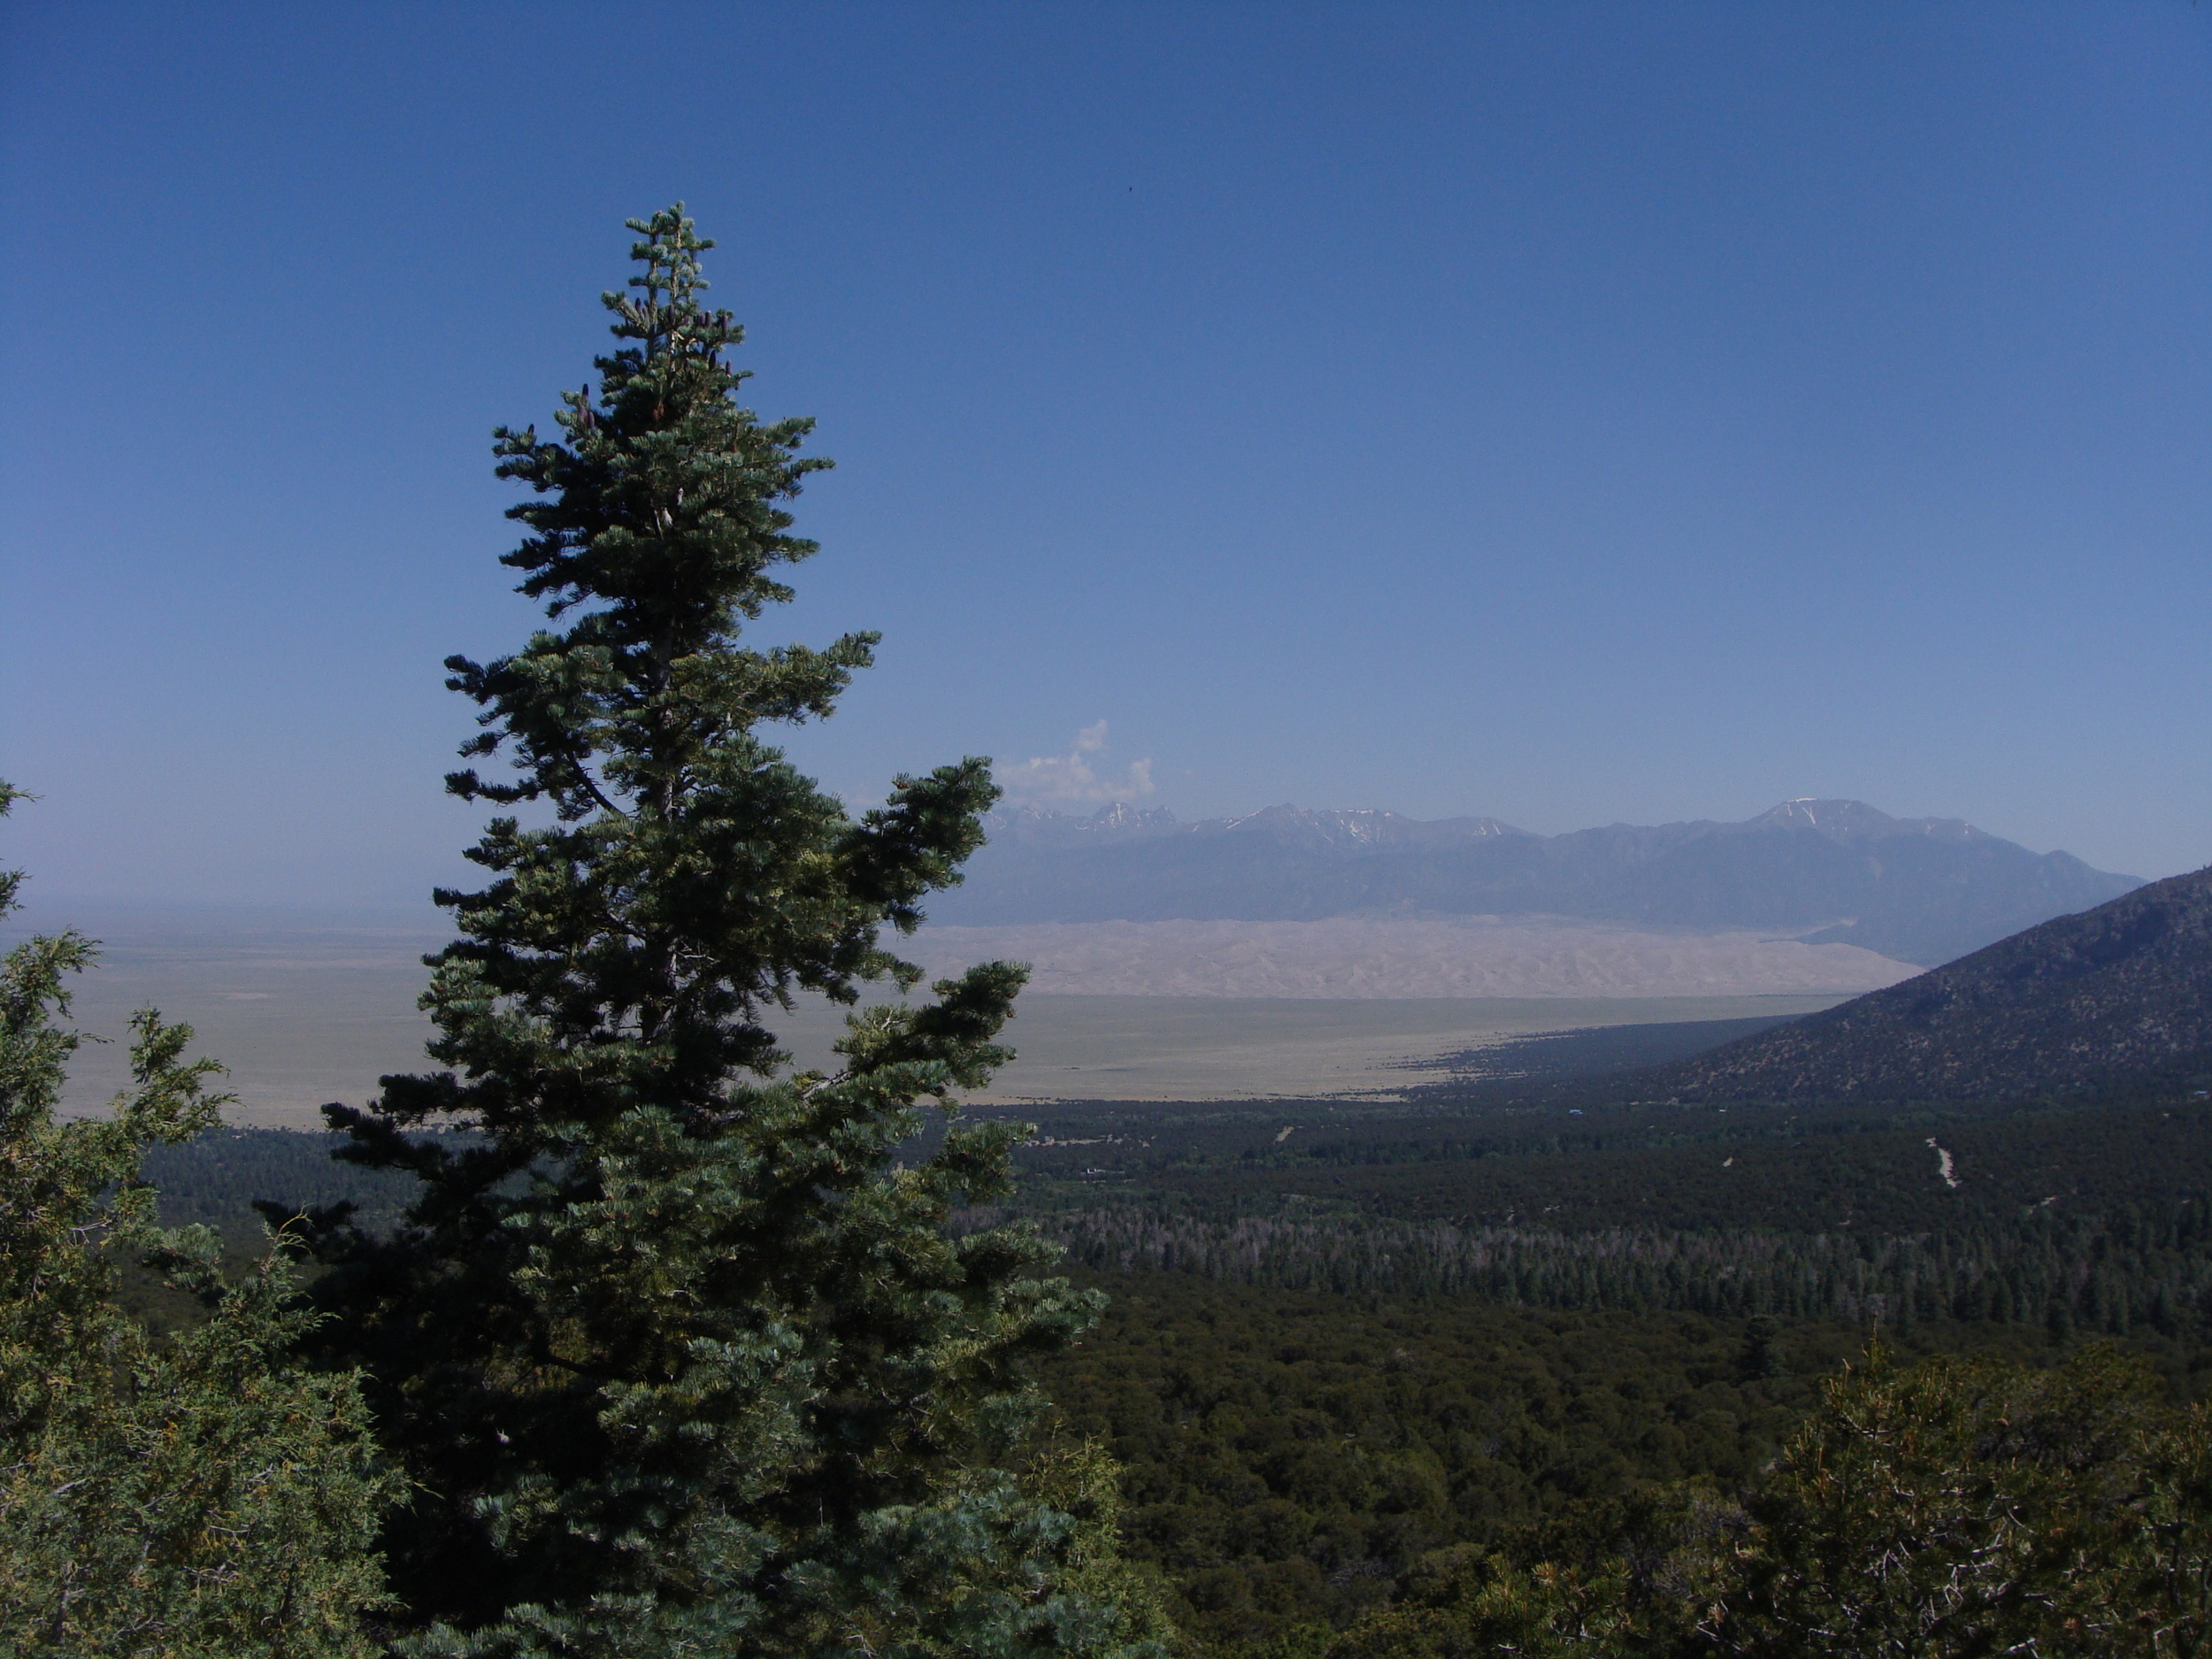 A view of the Great Sand Dunes from Blanca Peak. On a clear day you can see forever ...